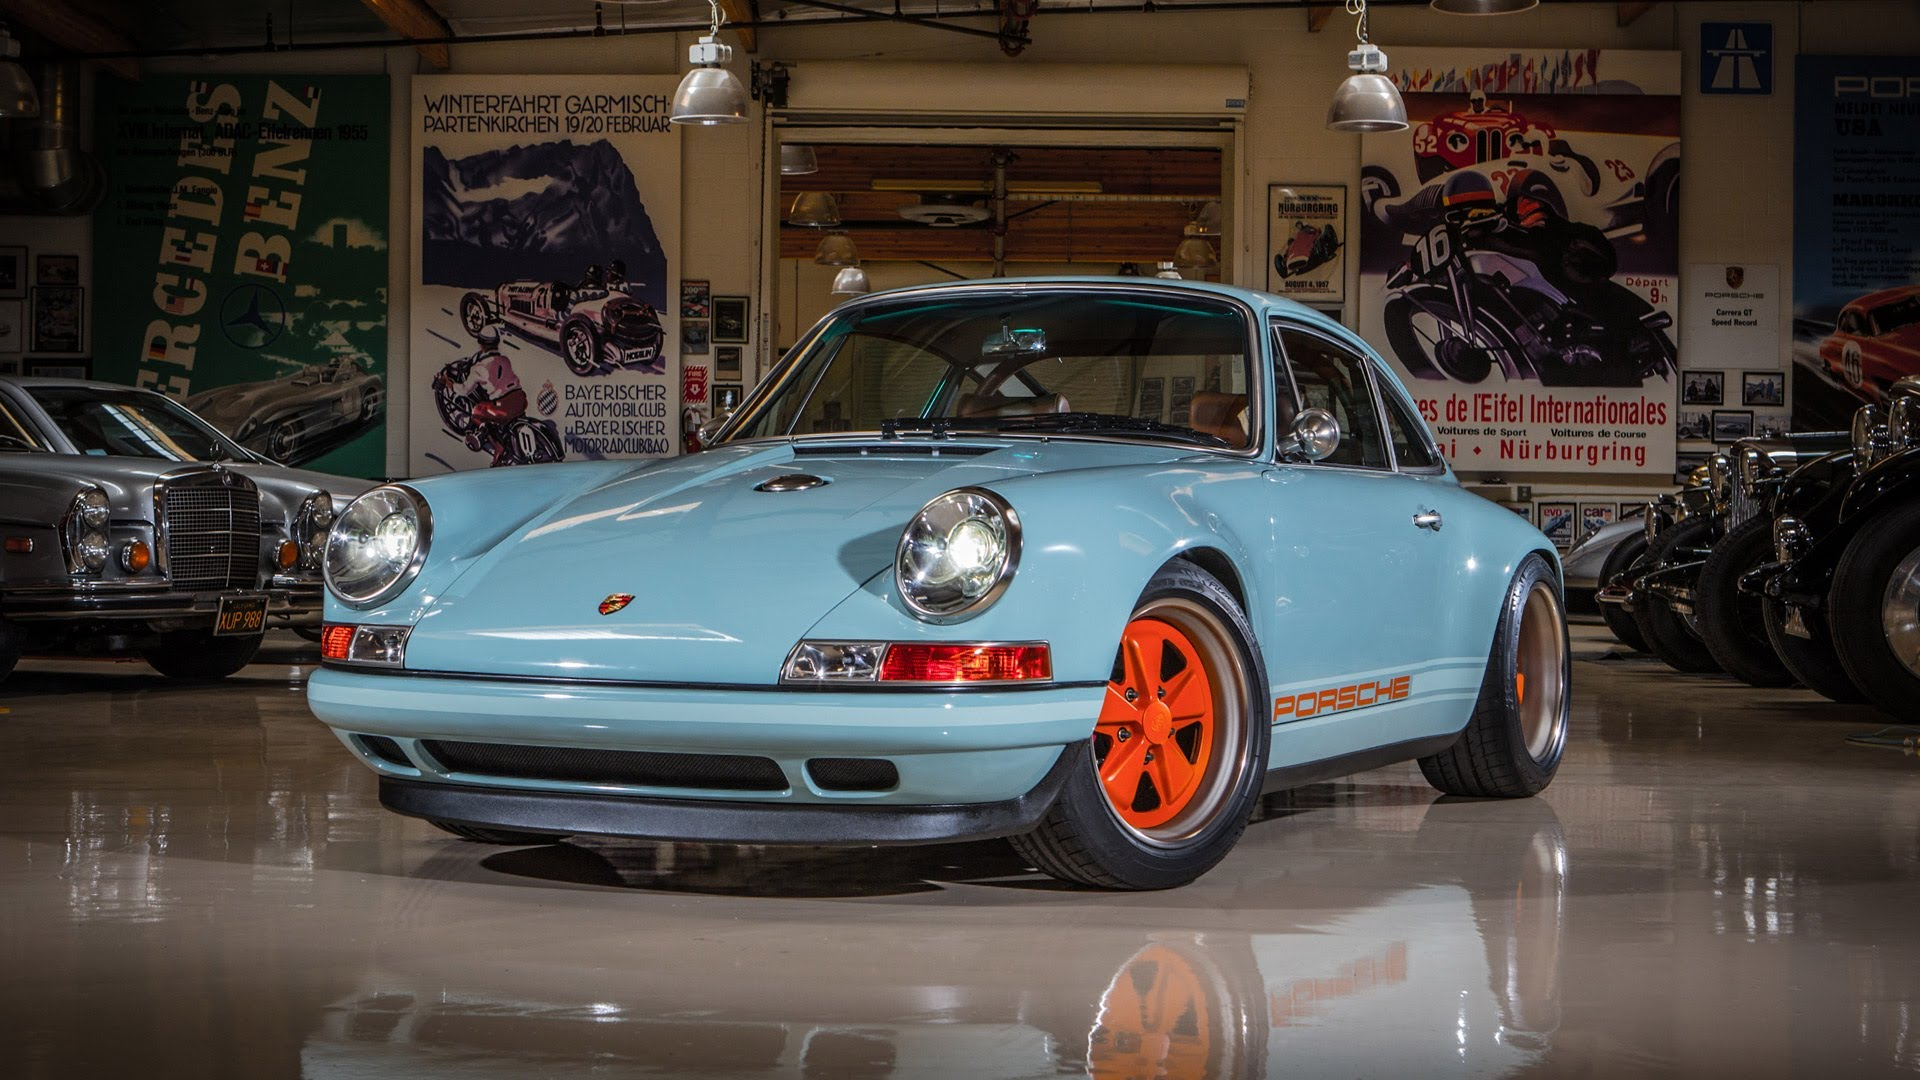 Jay Leno drives a Porsche 911 by Singer - CarPower360